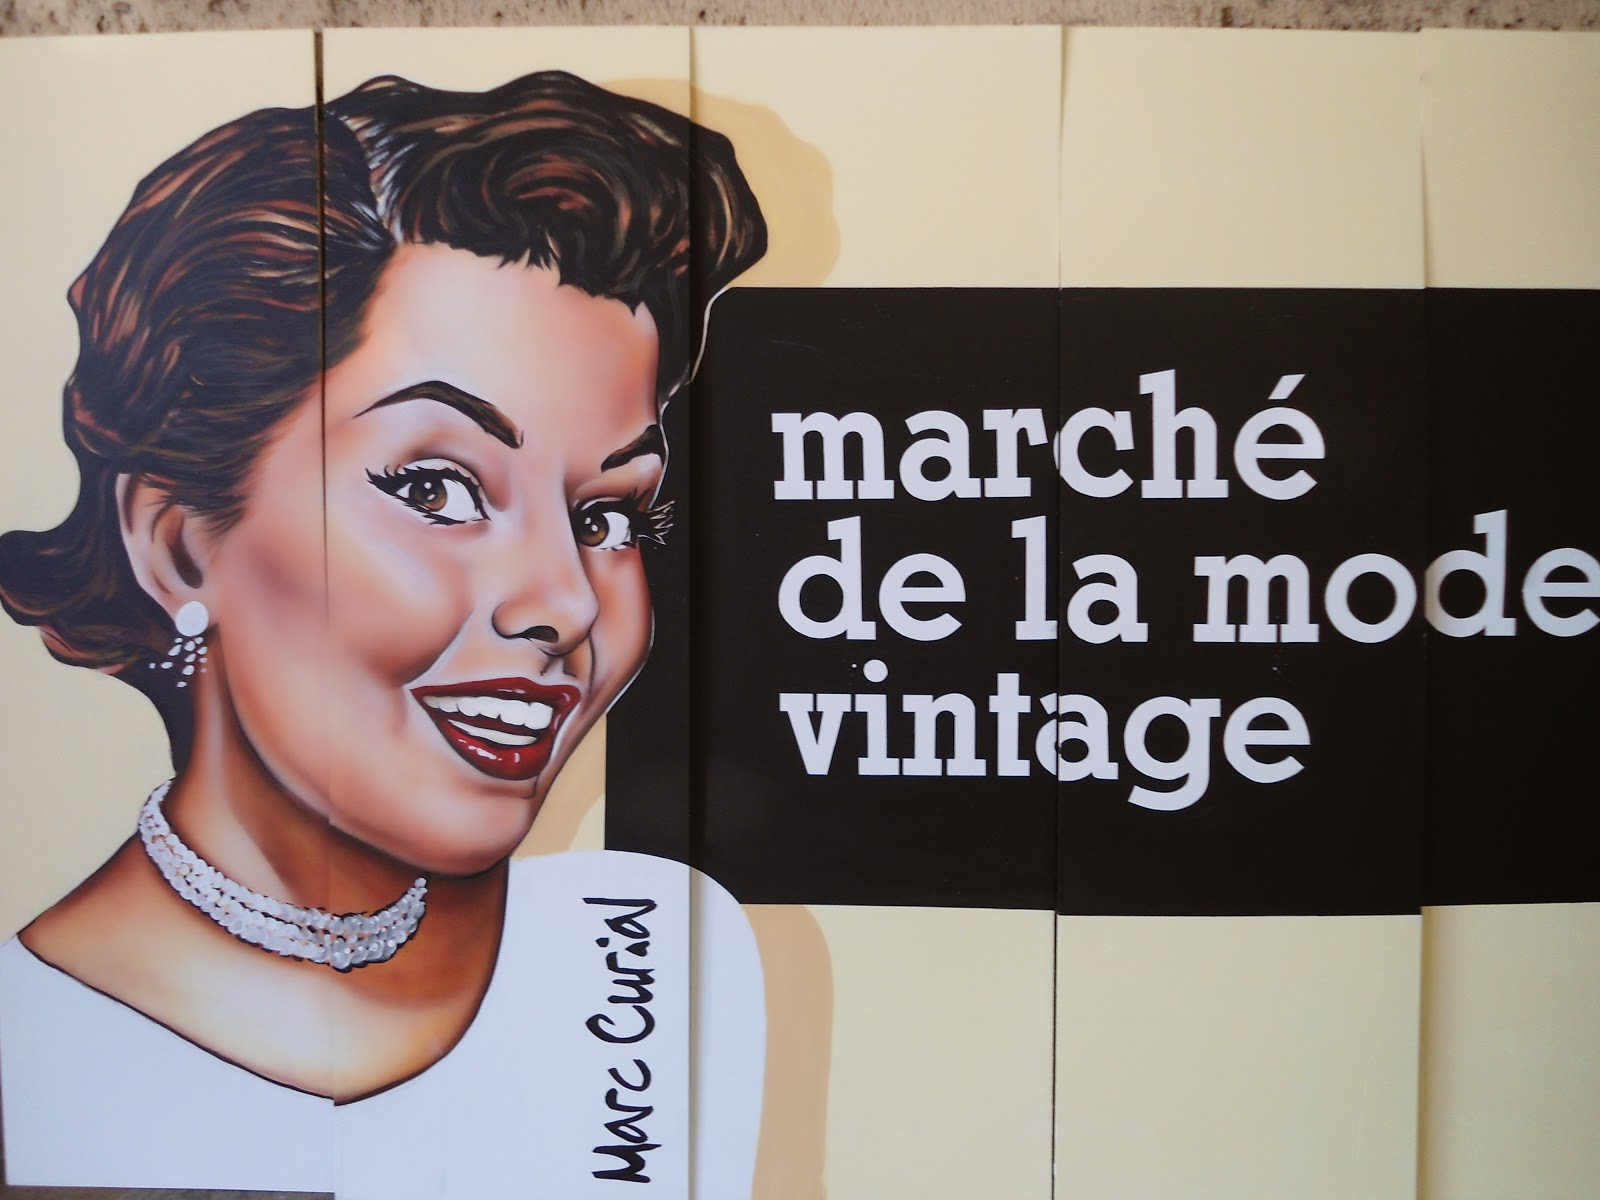 March de la mode vintage lyon le retour bettinael passion couture made in france - Salon de la mode vintage lyon ...